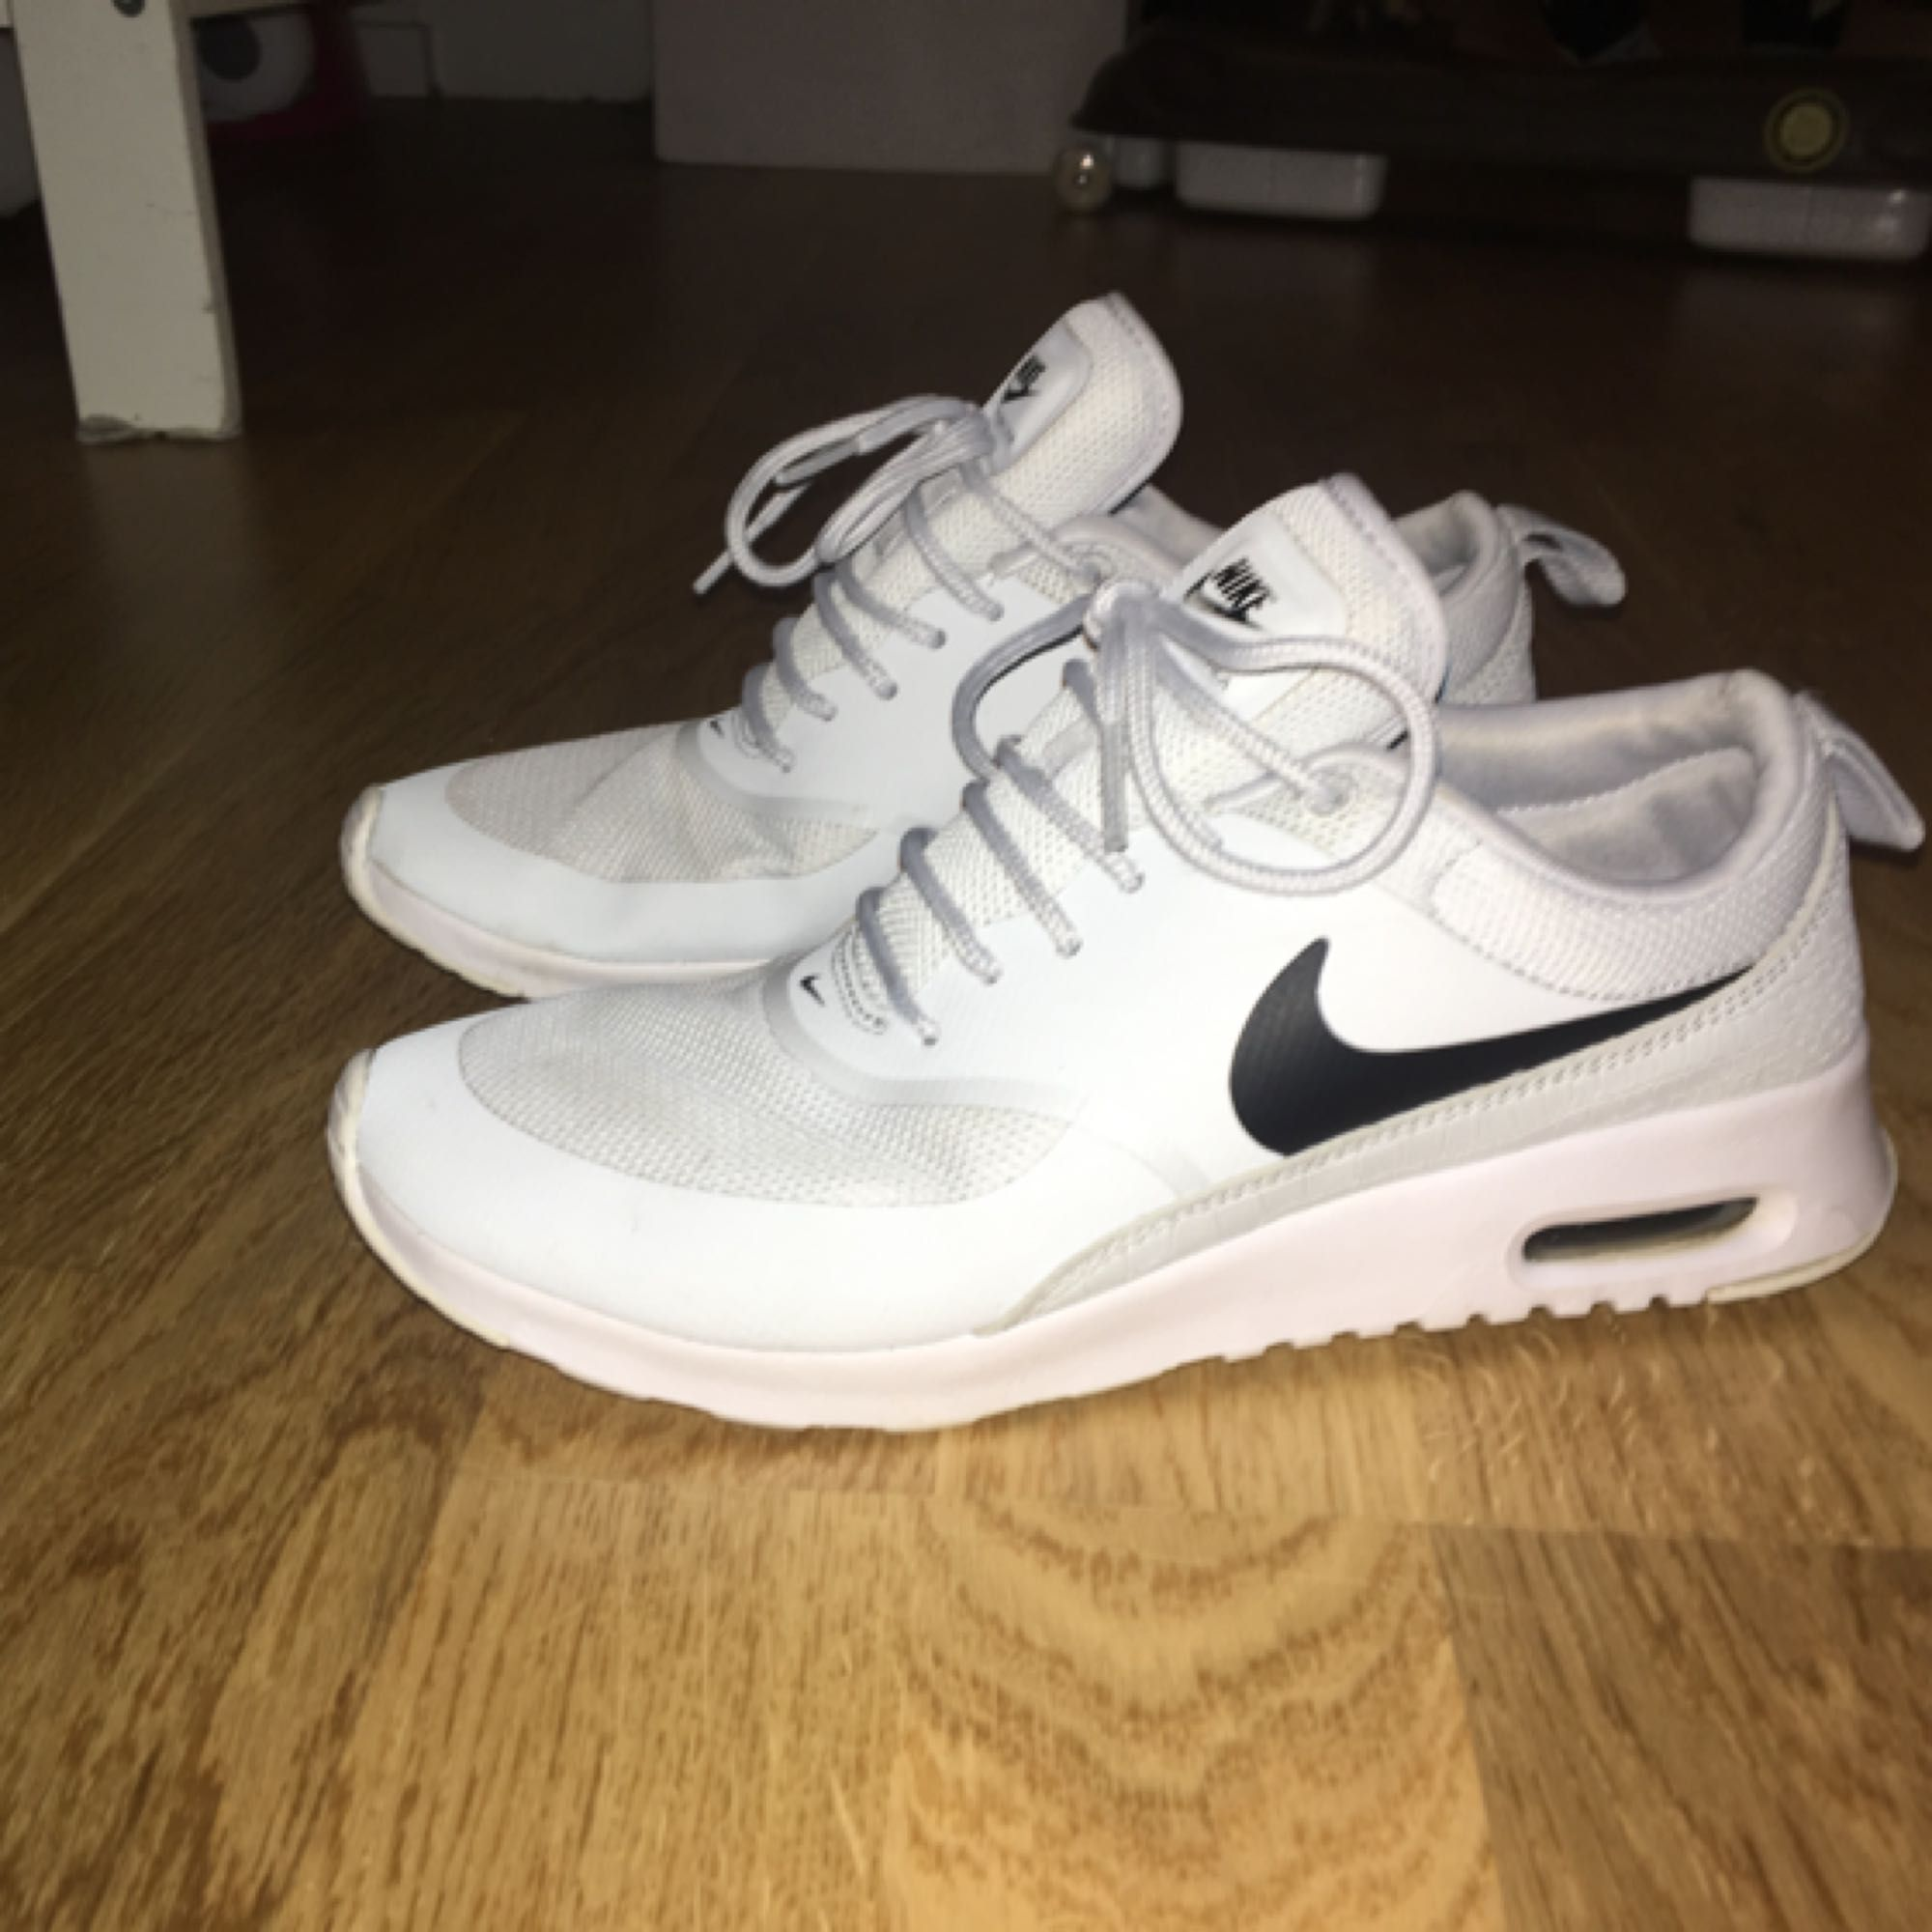 1f6b9a91a73 Sneakers | Second Hand Sko fra Nike i stockholm